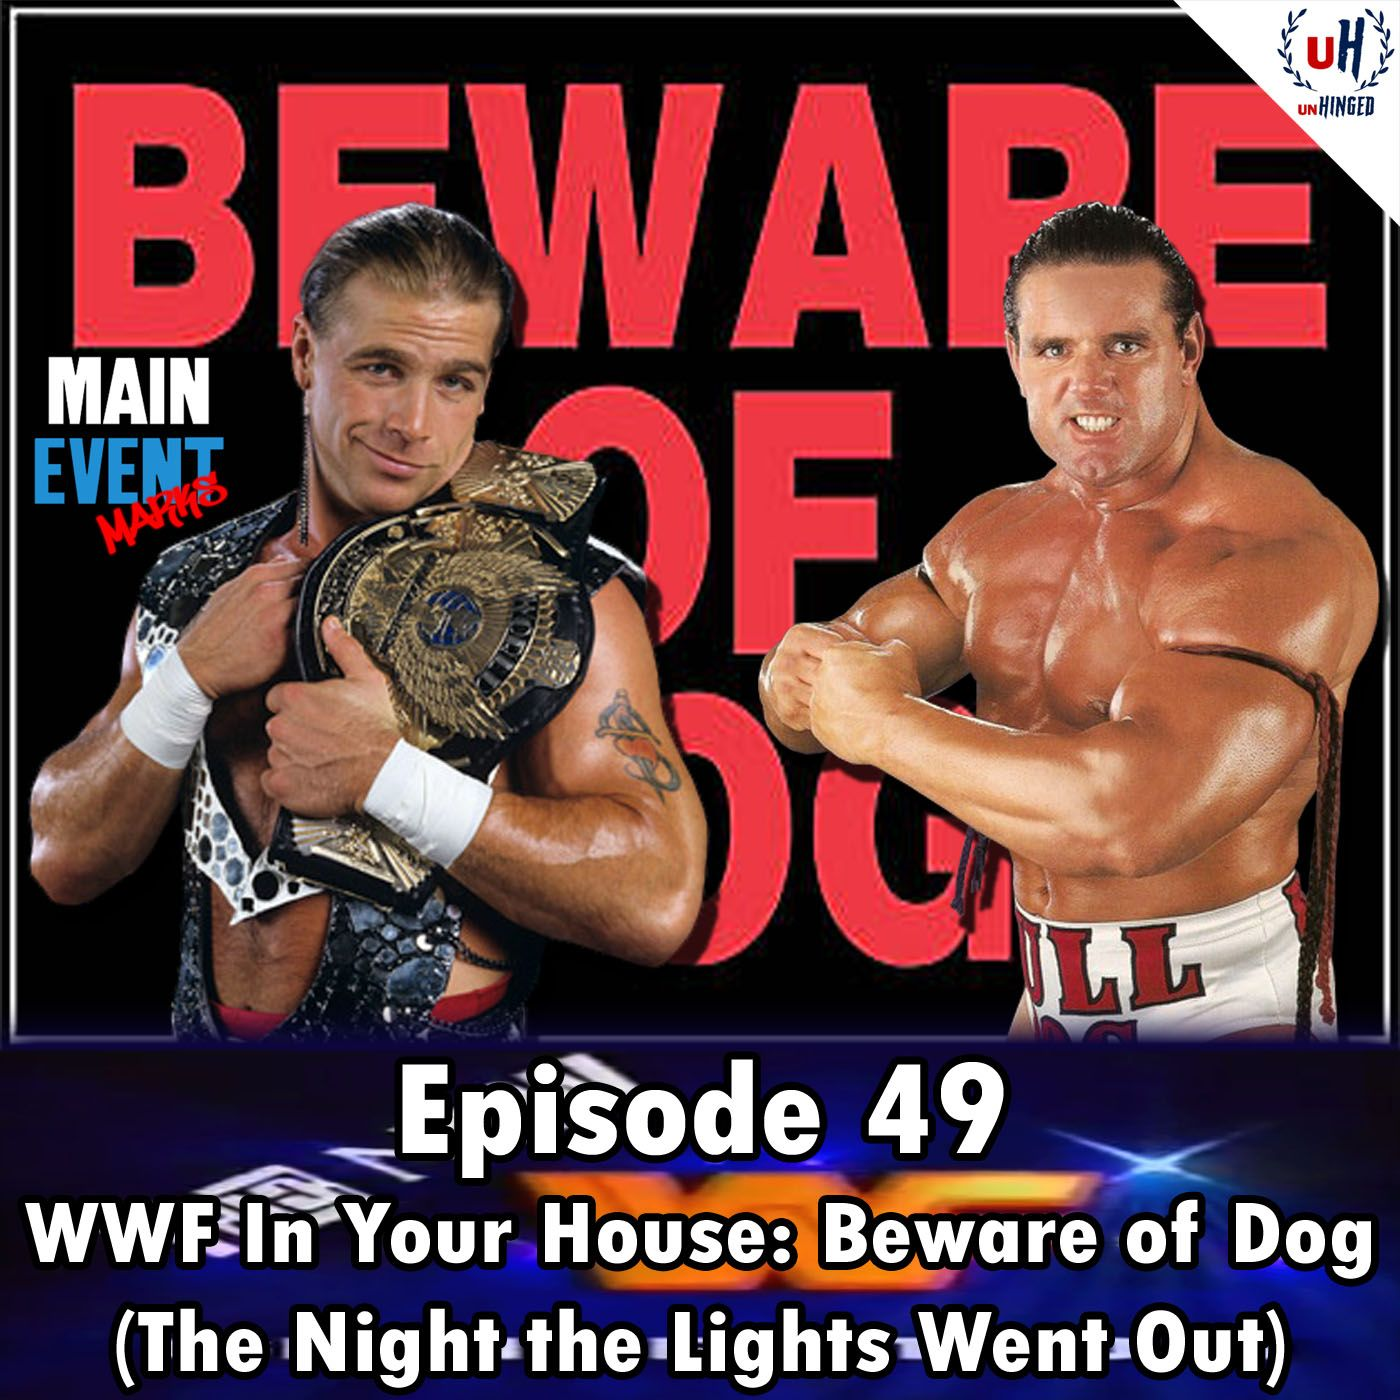 Episode 49: WWF In Your House 8: Beware of Dog (The Night the Lights Went Out)